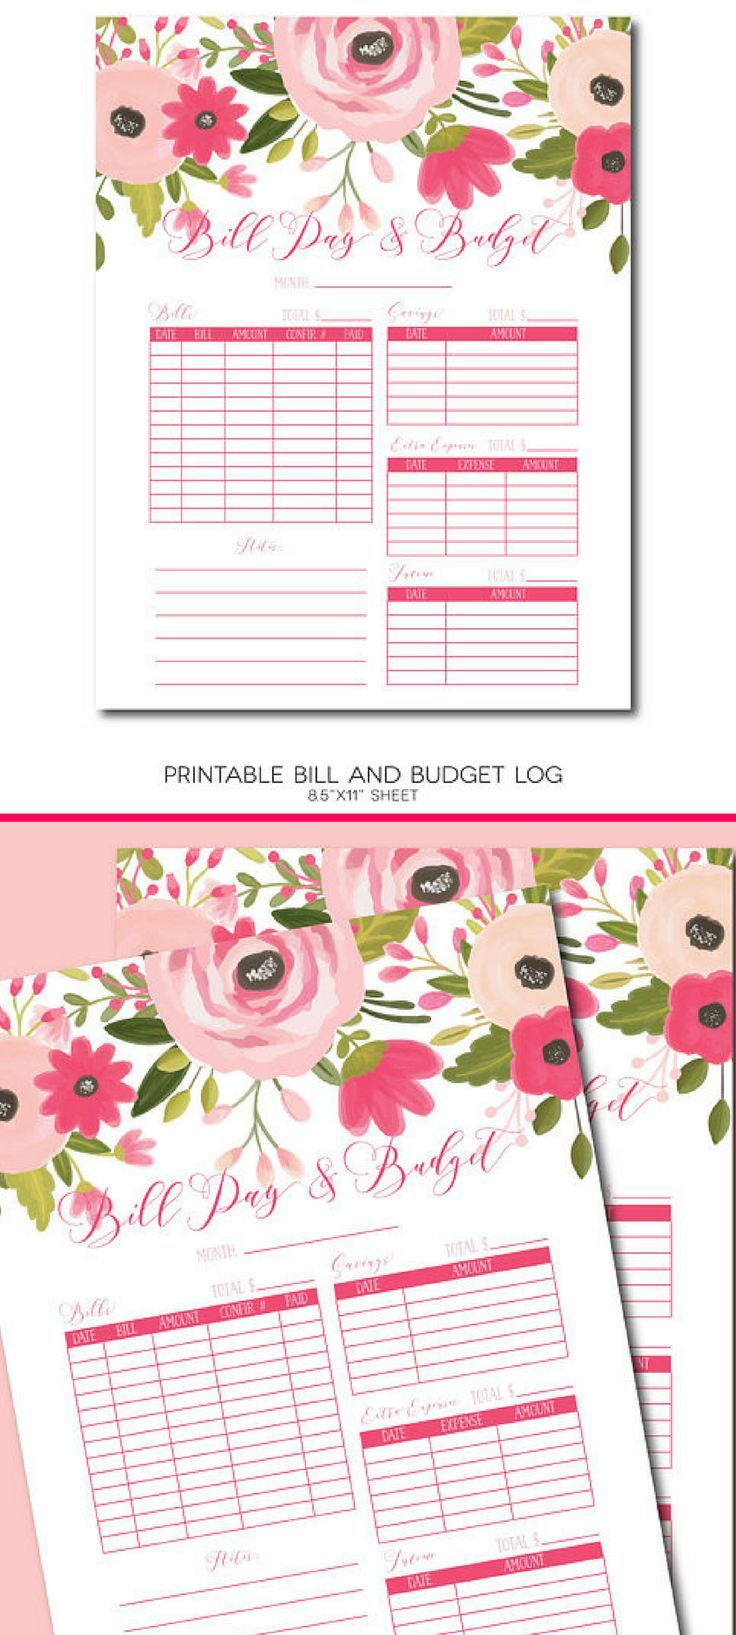 Paying bills and keeping track of your money doesn't have to be boring.  This beautiful instant download could actually making bill paying fun!  Printable Bill Pay Log, Bill Pay Tracker, Bill Tracker Log, Bill Pay Organizer, Budget Planner, Personal Finance Log, Bill Organizer #Ad #Moneymanagement #billtracker #printable